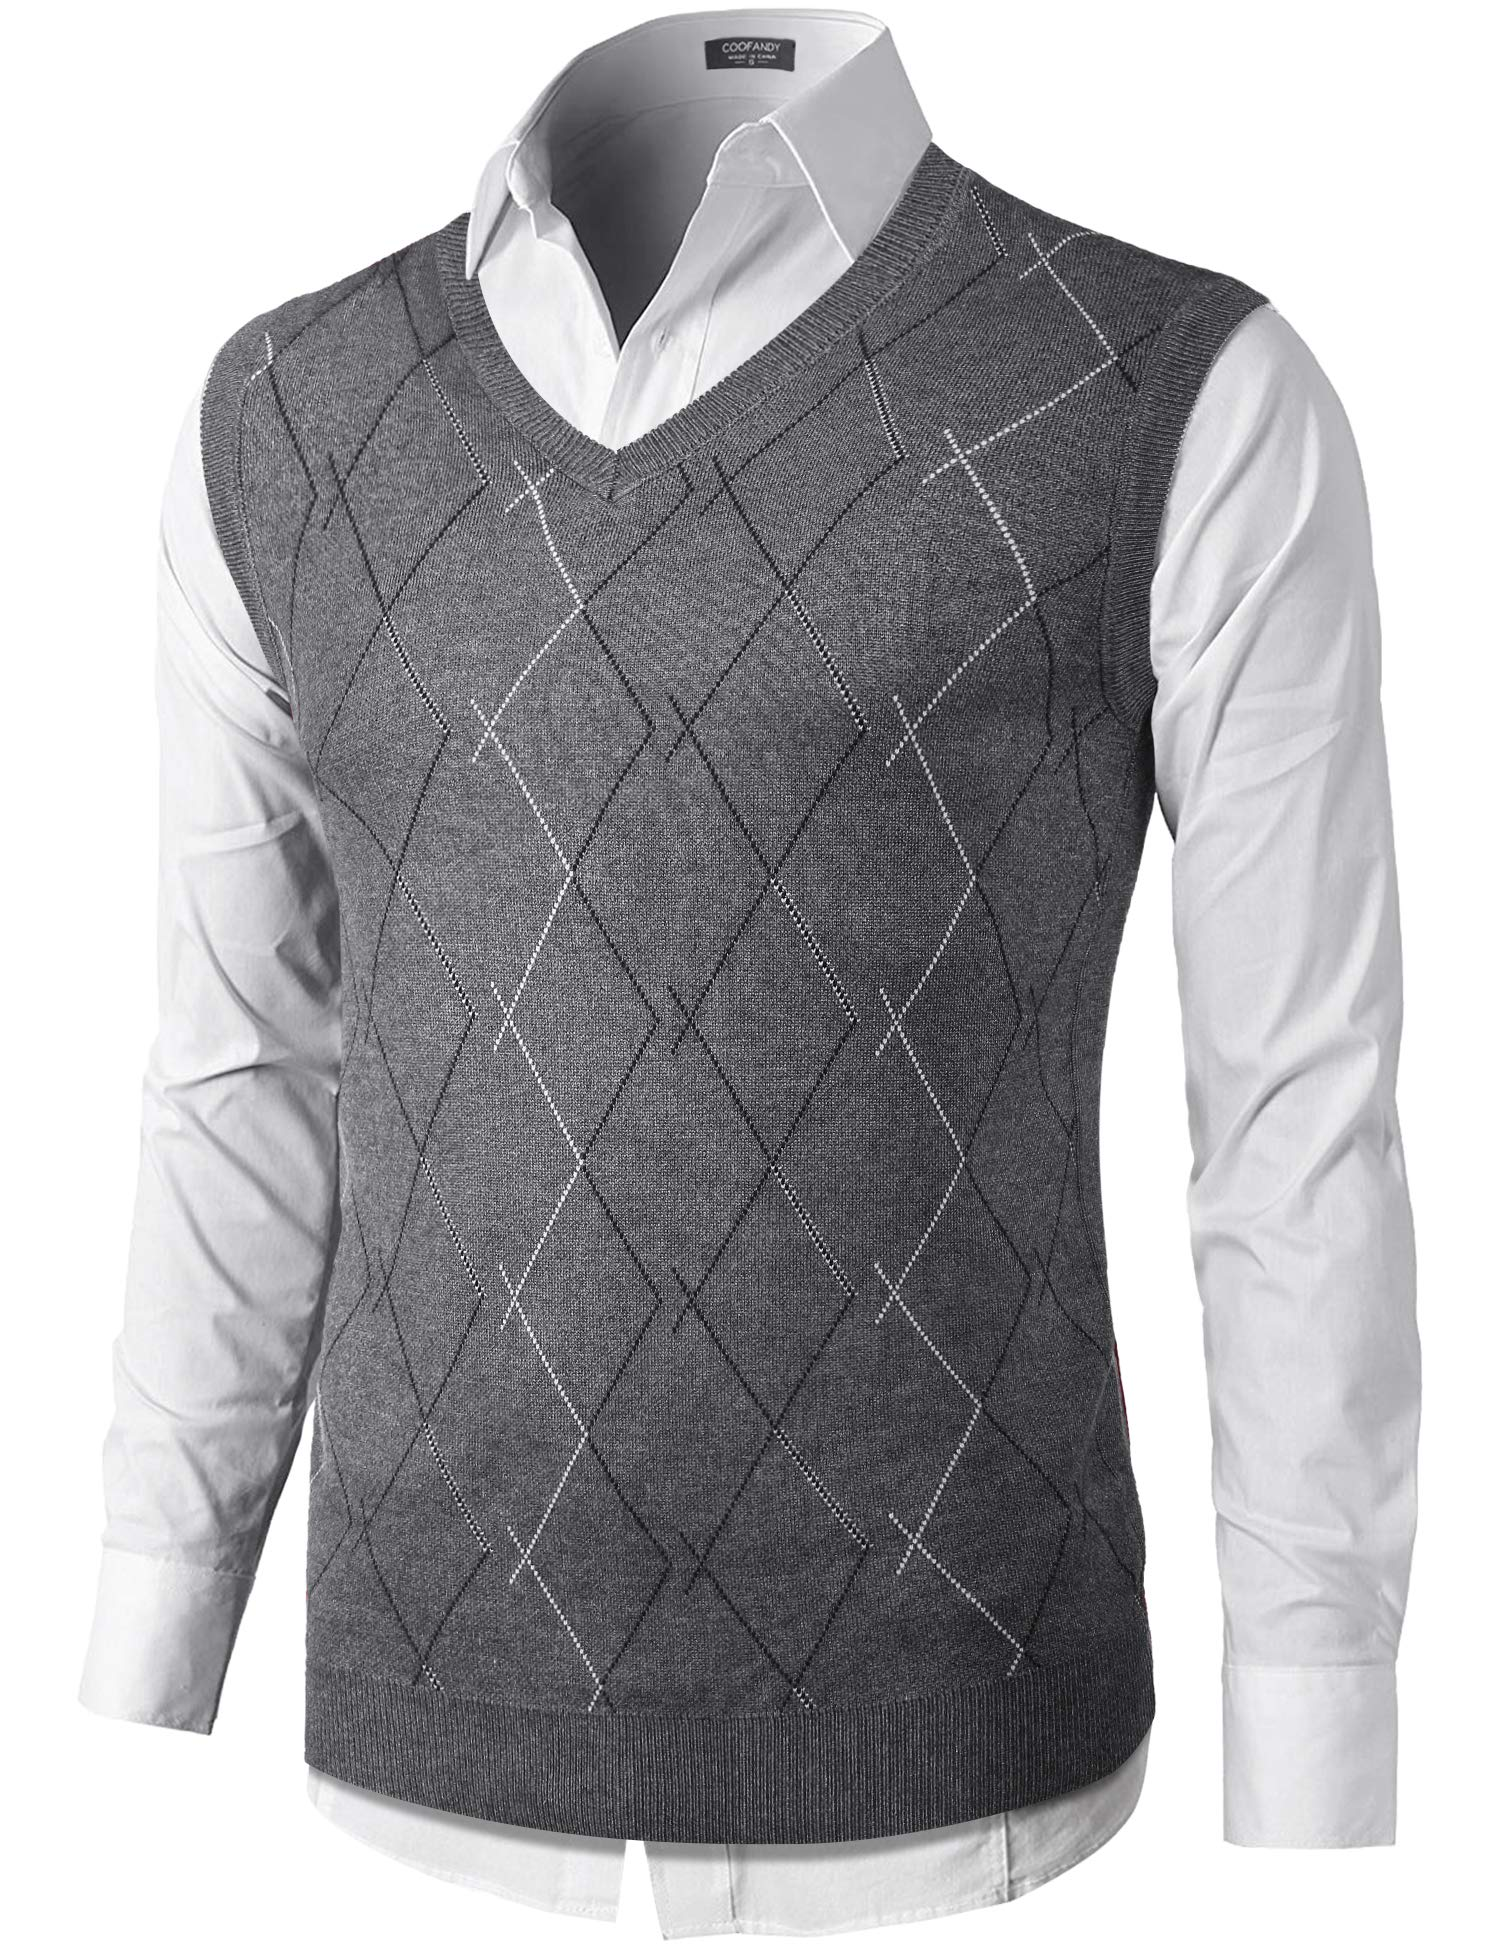 COOFANDY Mens Business Sleeveless Warm Pullover Sweaters with Ribbing Edge Grey by COOFANDY